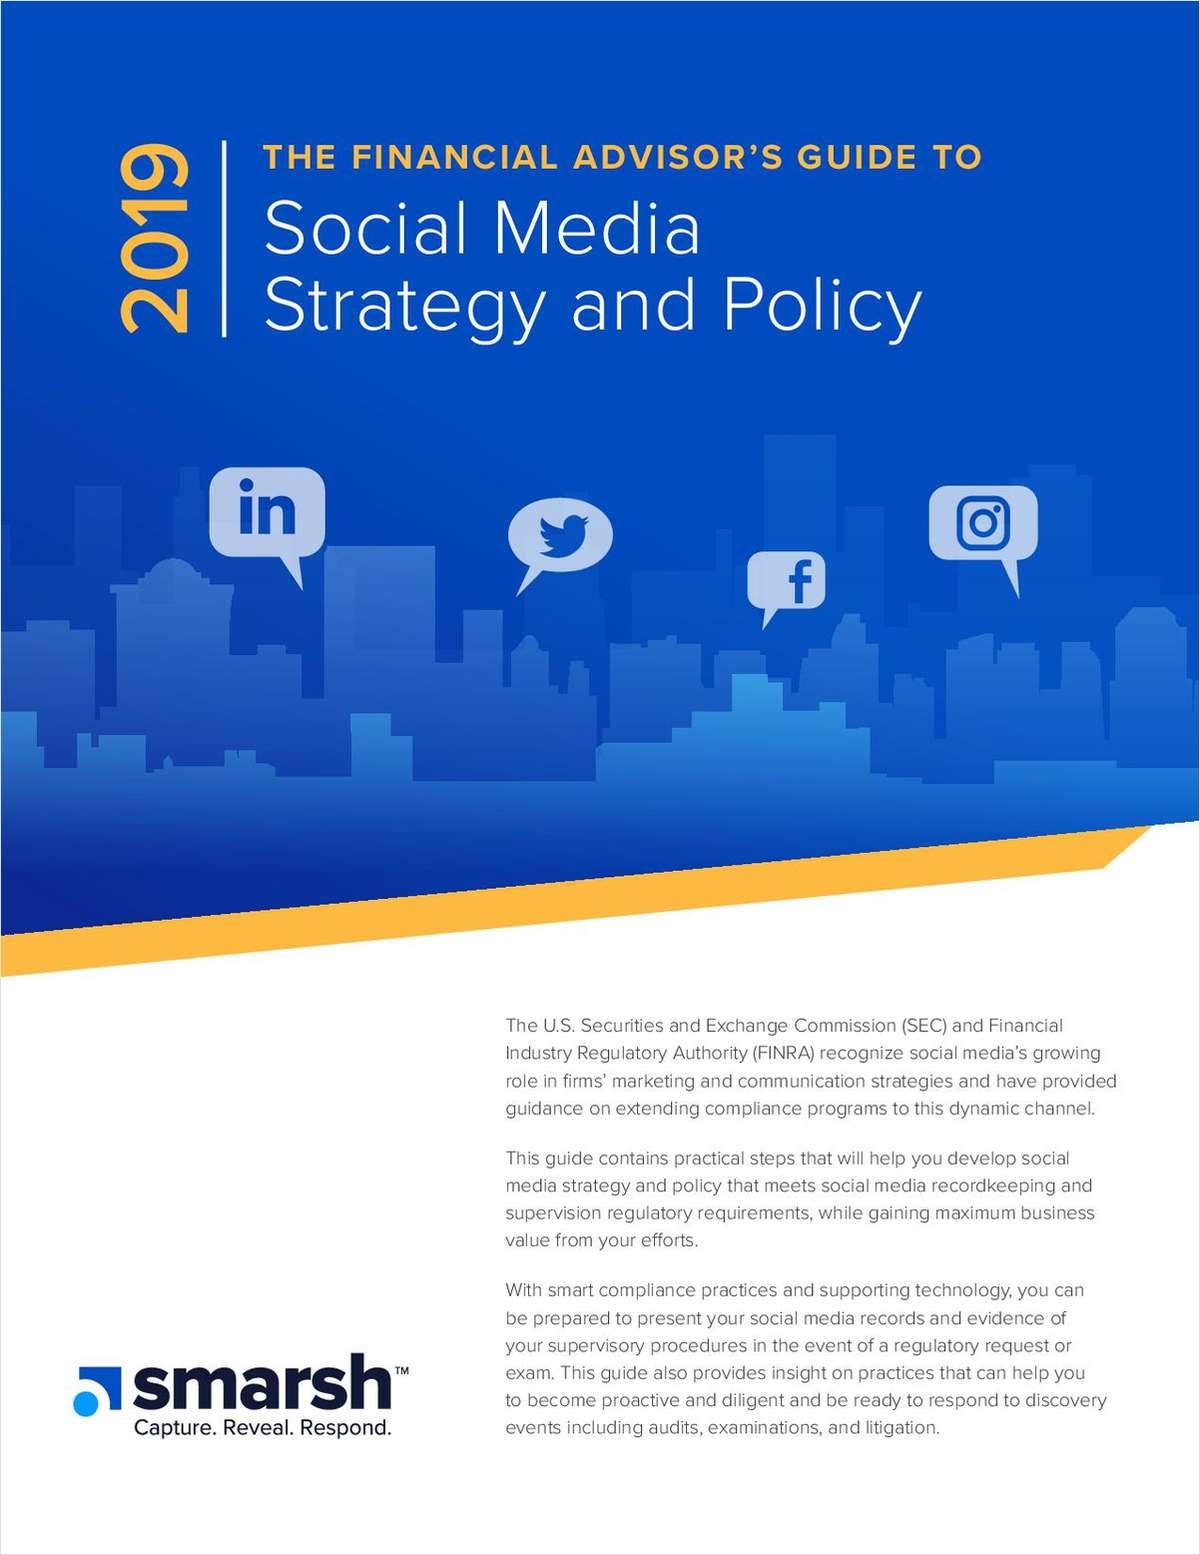 The Financial Advisor's Guide To Social Media Strategy and Policy